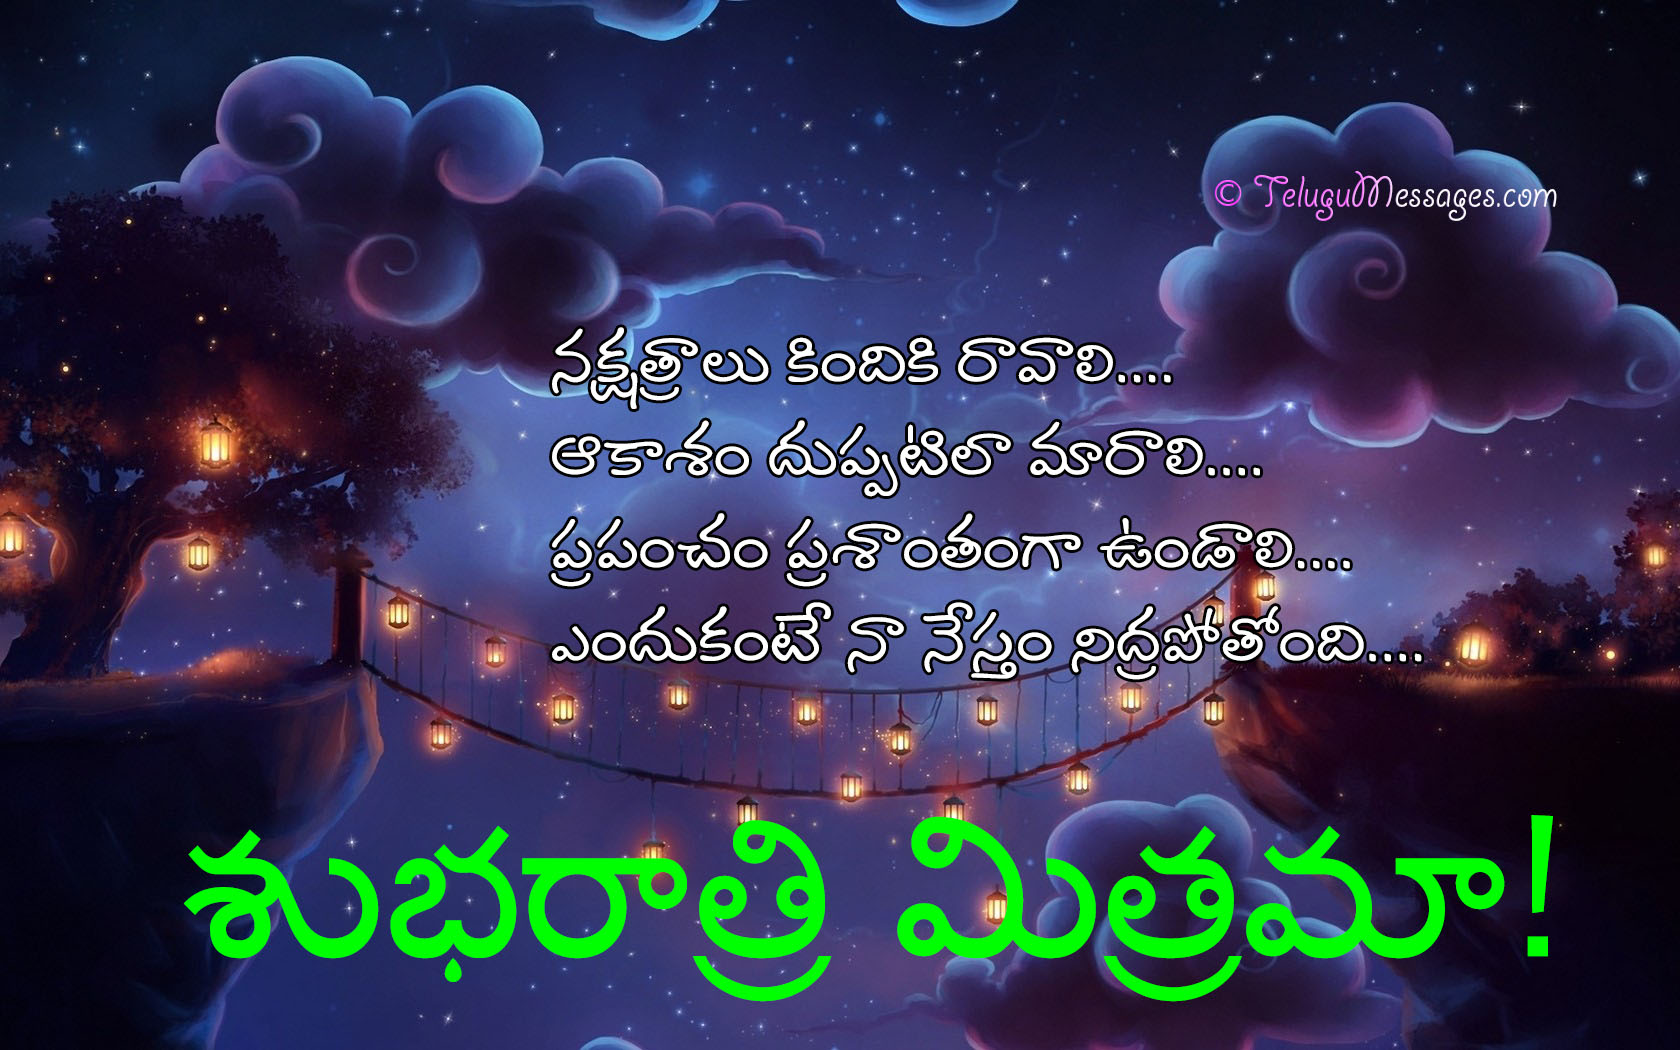 Good Night Quotes on Stars Sky World Calm Friend